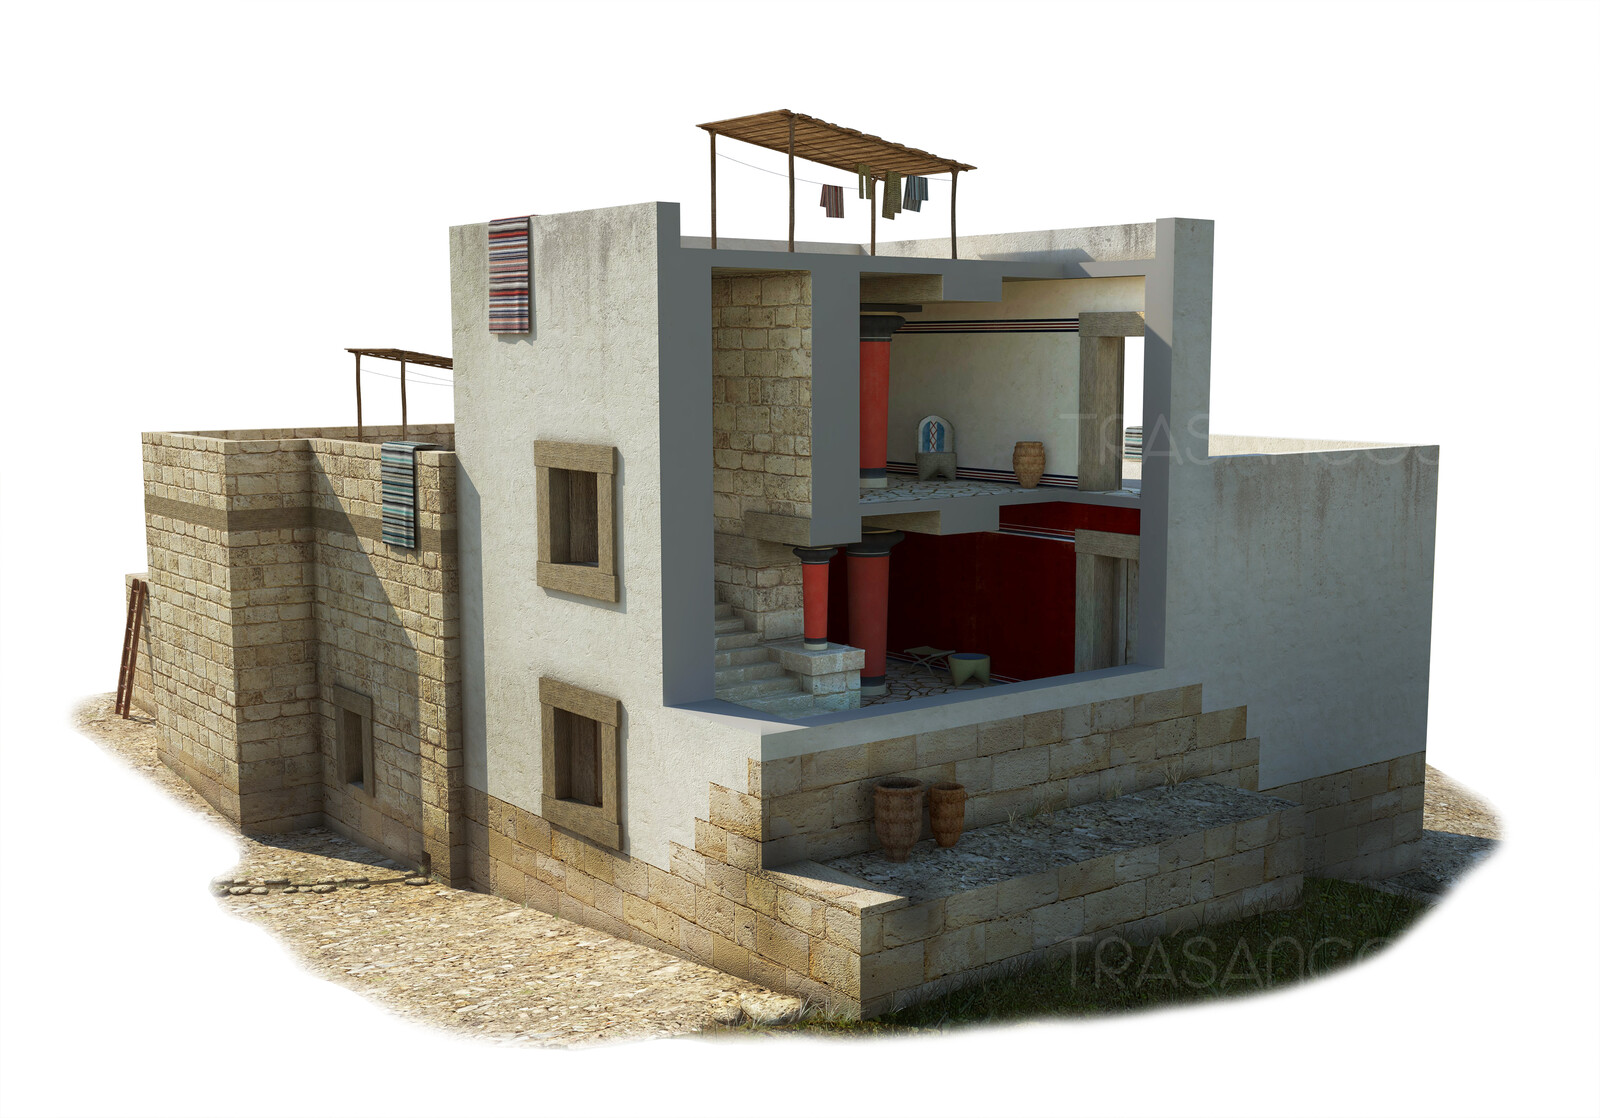 Cut away of the reconstruction of the South House in Cnossos. Modeled in collaboration with: - Diego Blanco